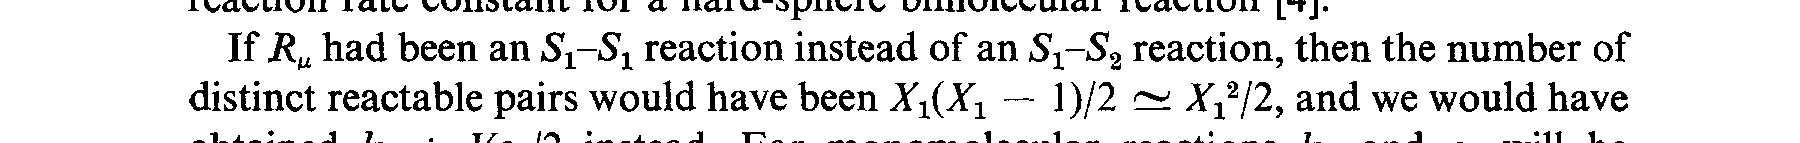 the averages; i.e., it is automatically assumed that (xix?) = (xi)(xj).